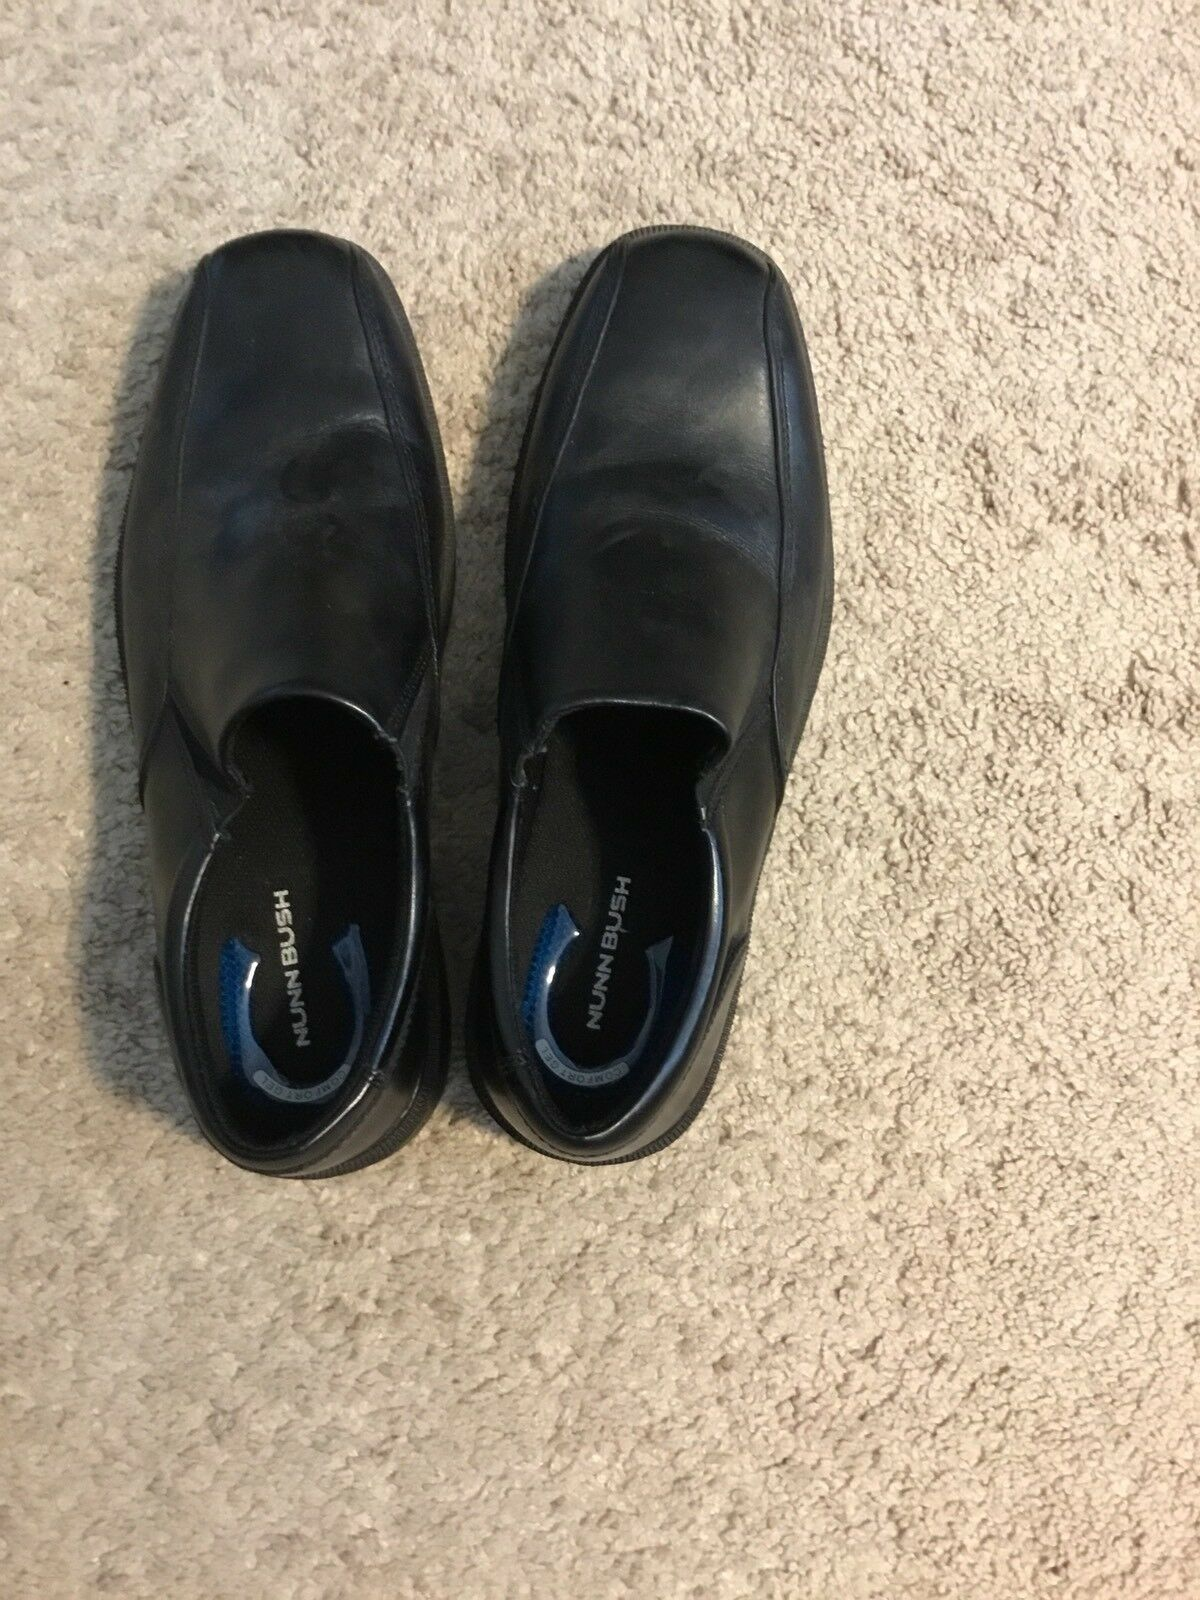 Nunn Bush 10.5 Black Loafer Shoe size 10.5 Bush Pre-Owned 331234